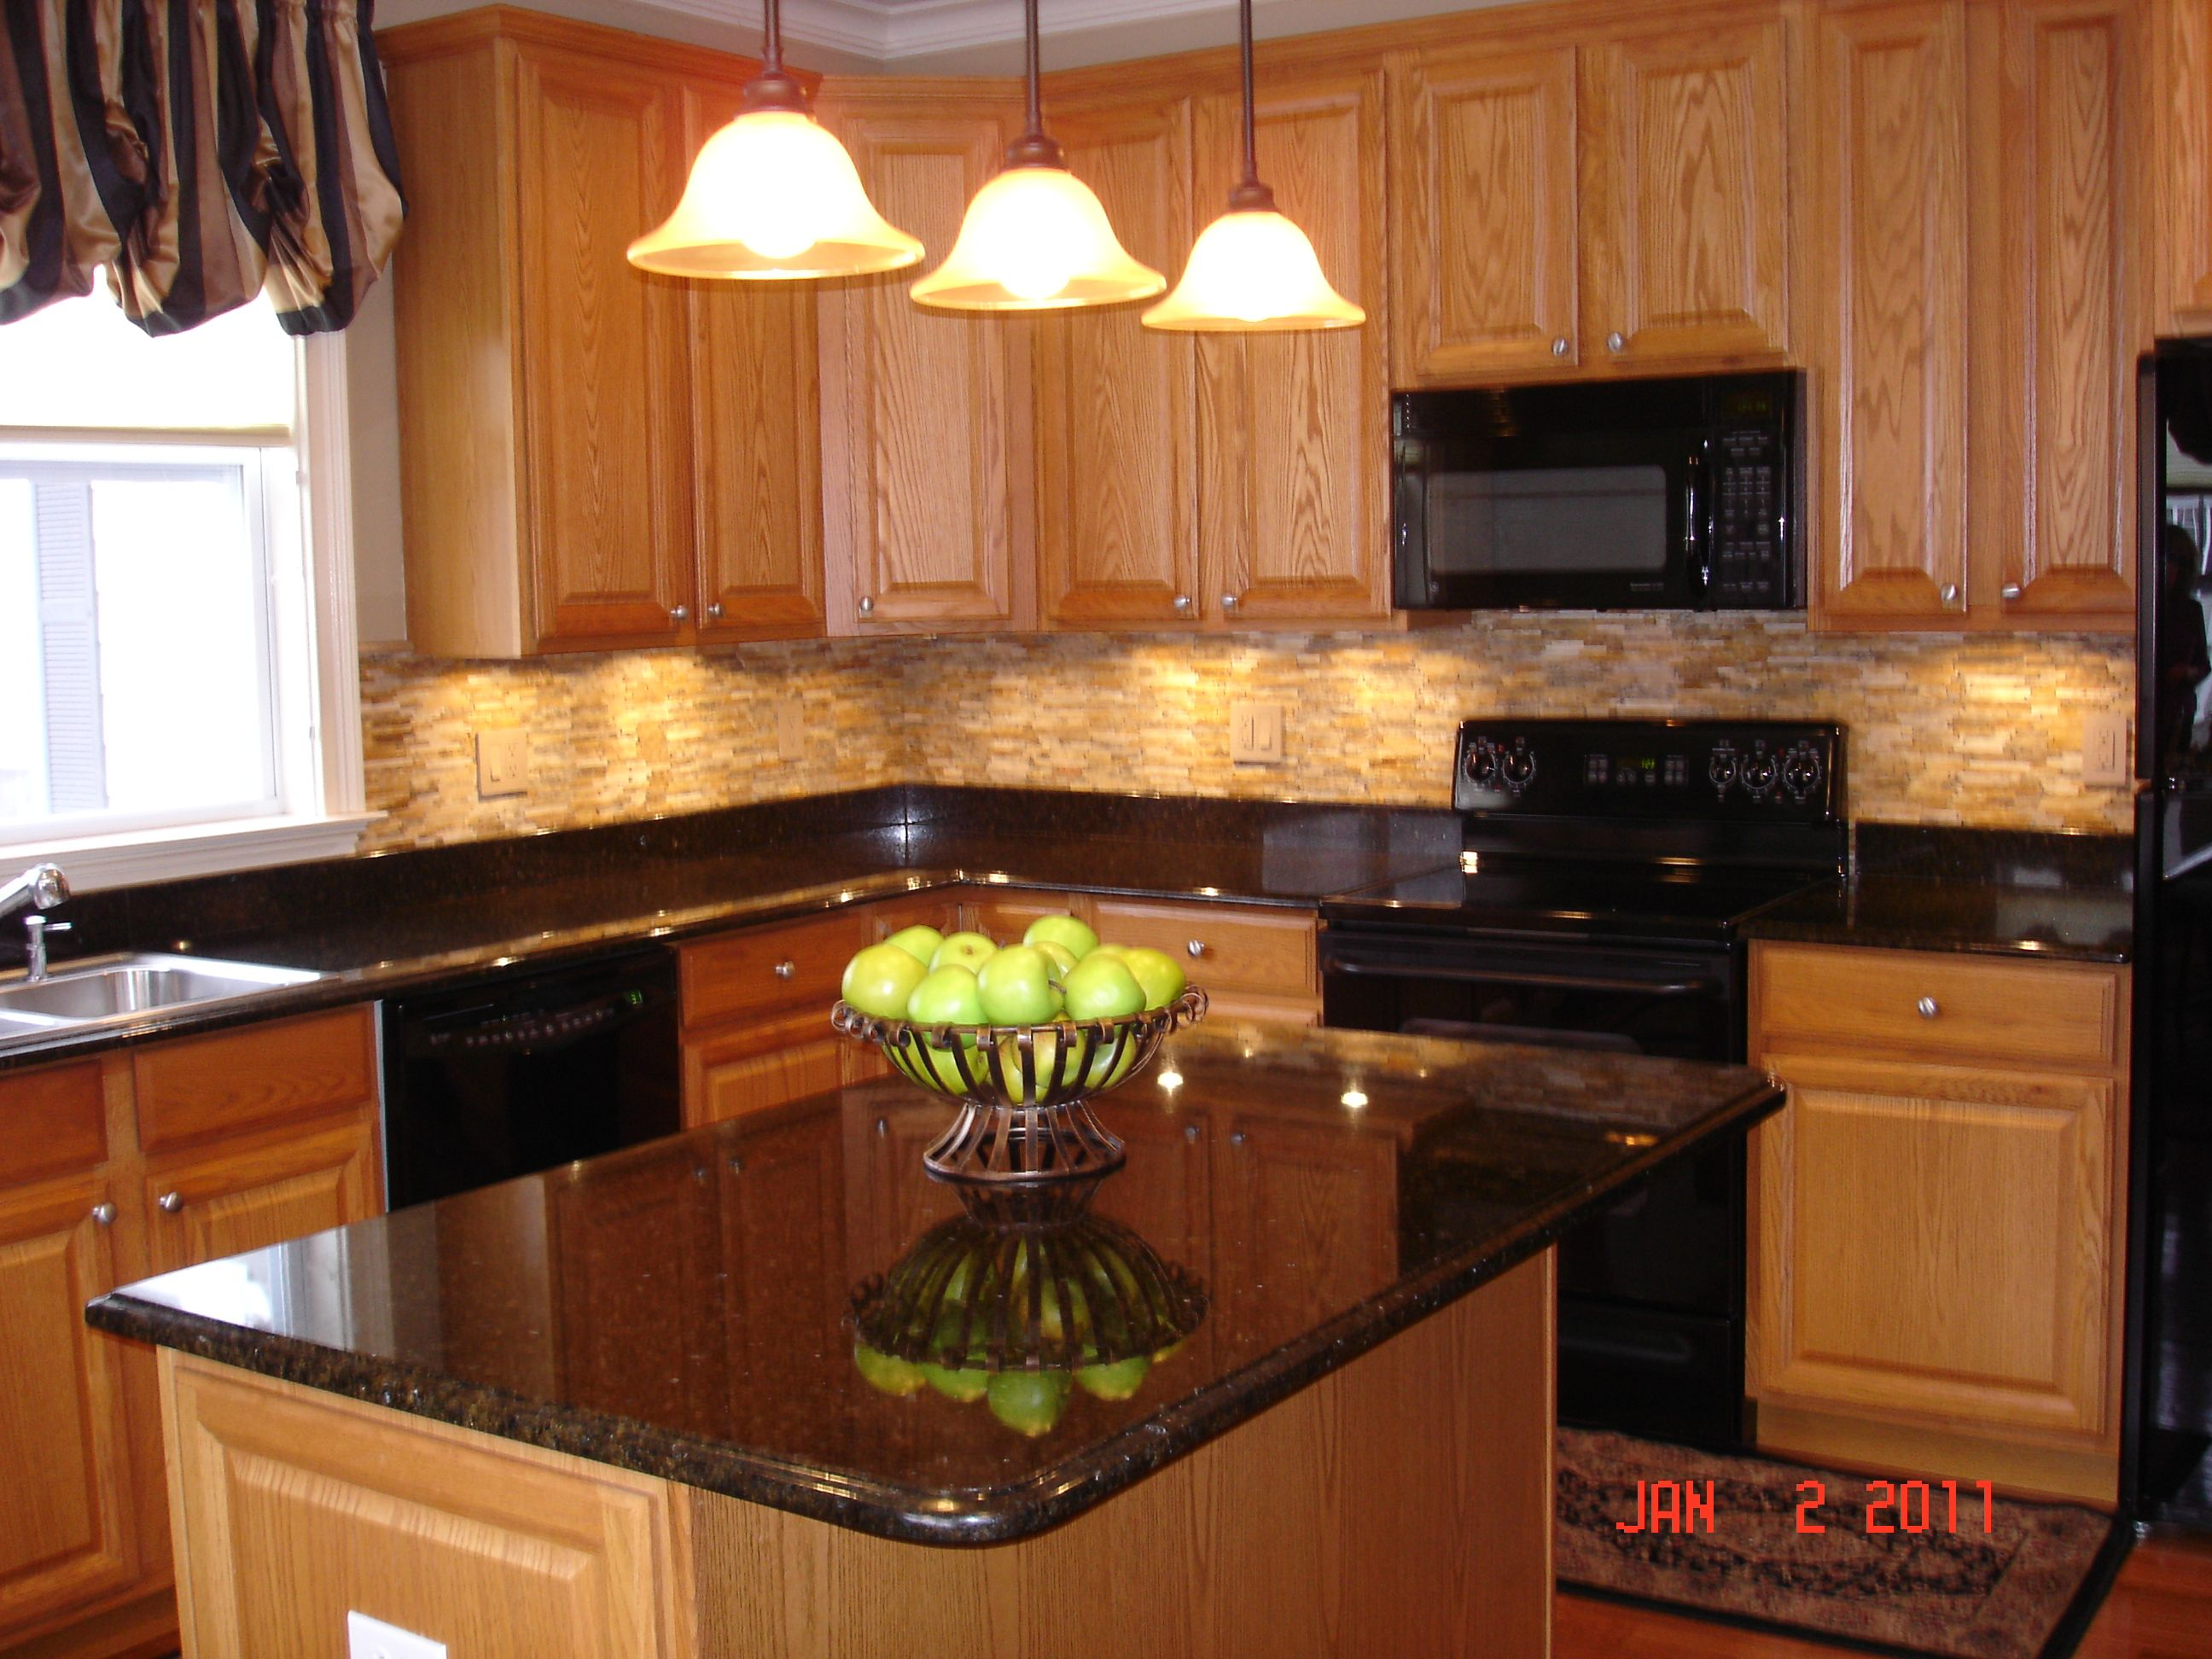 Oak Cabinets Kitchen Design Oak Wood Cabinetstogo With Under Cabinet Lighting And